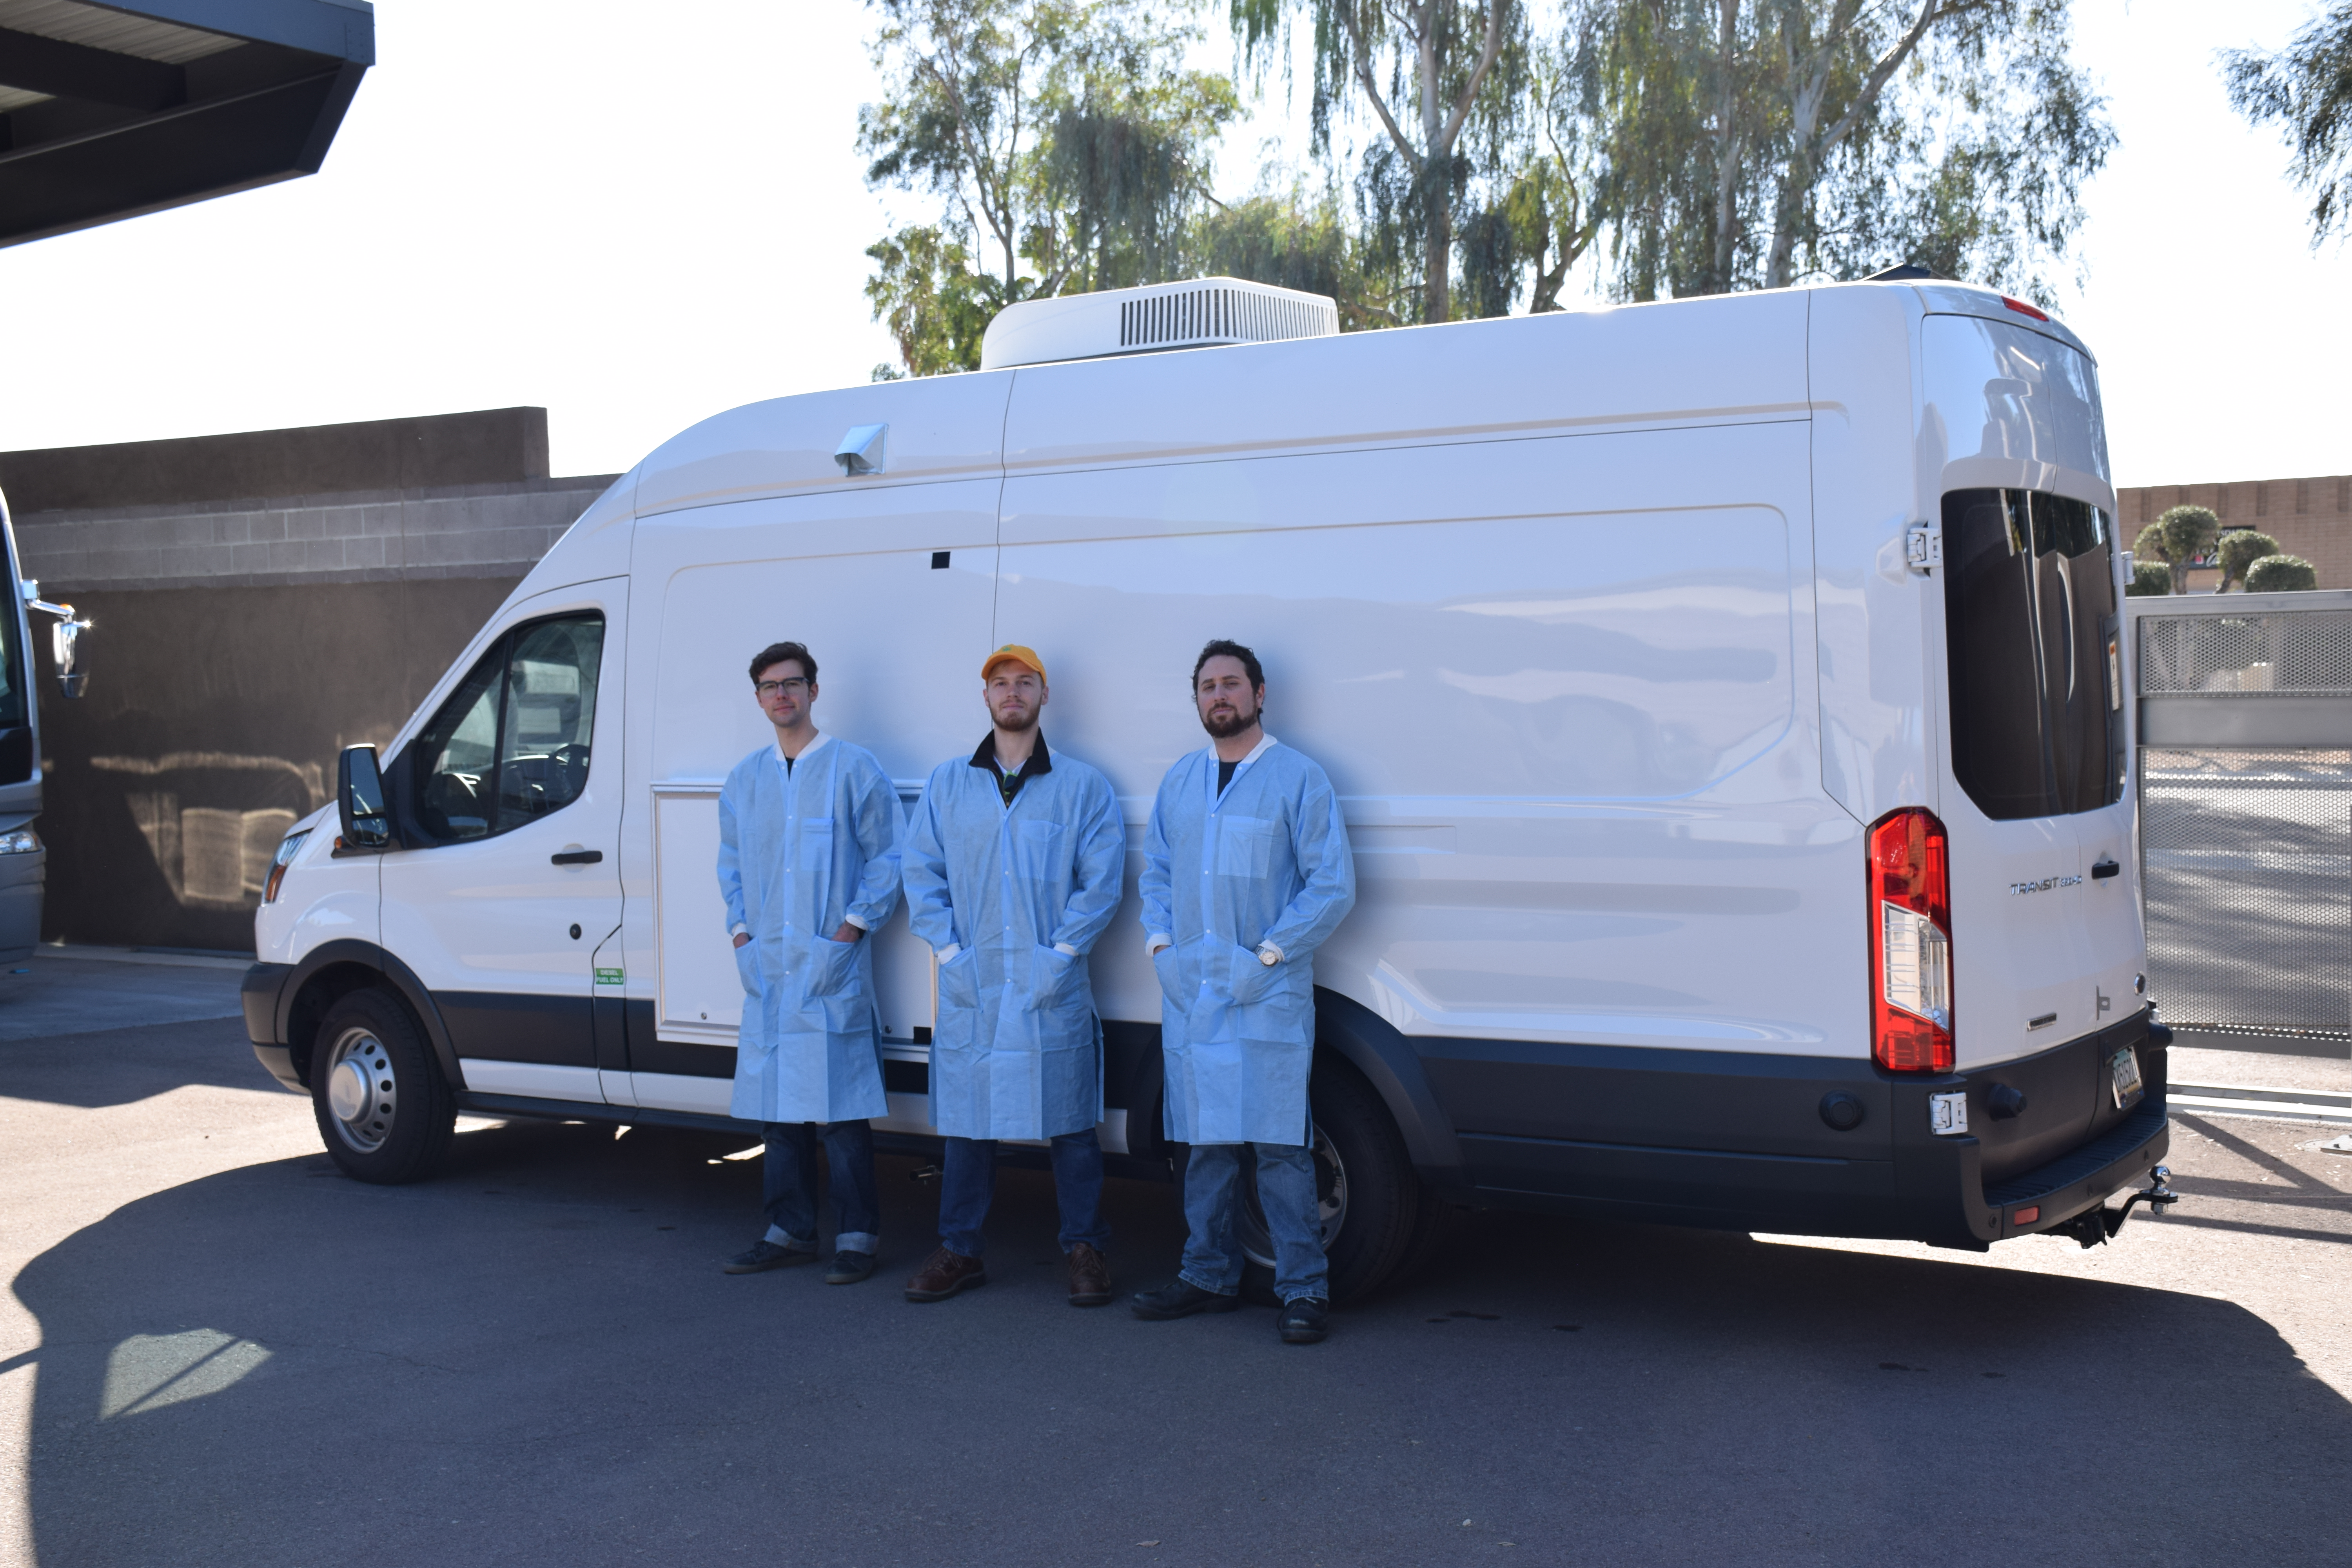 The first mobile cannabis testing lab in Arizona - Cannabis